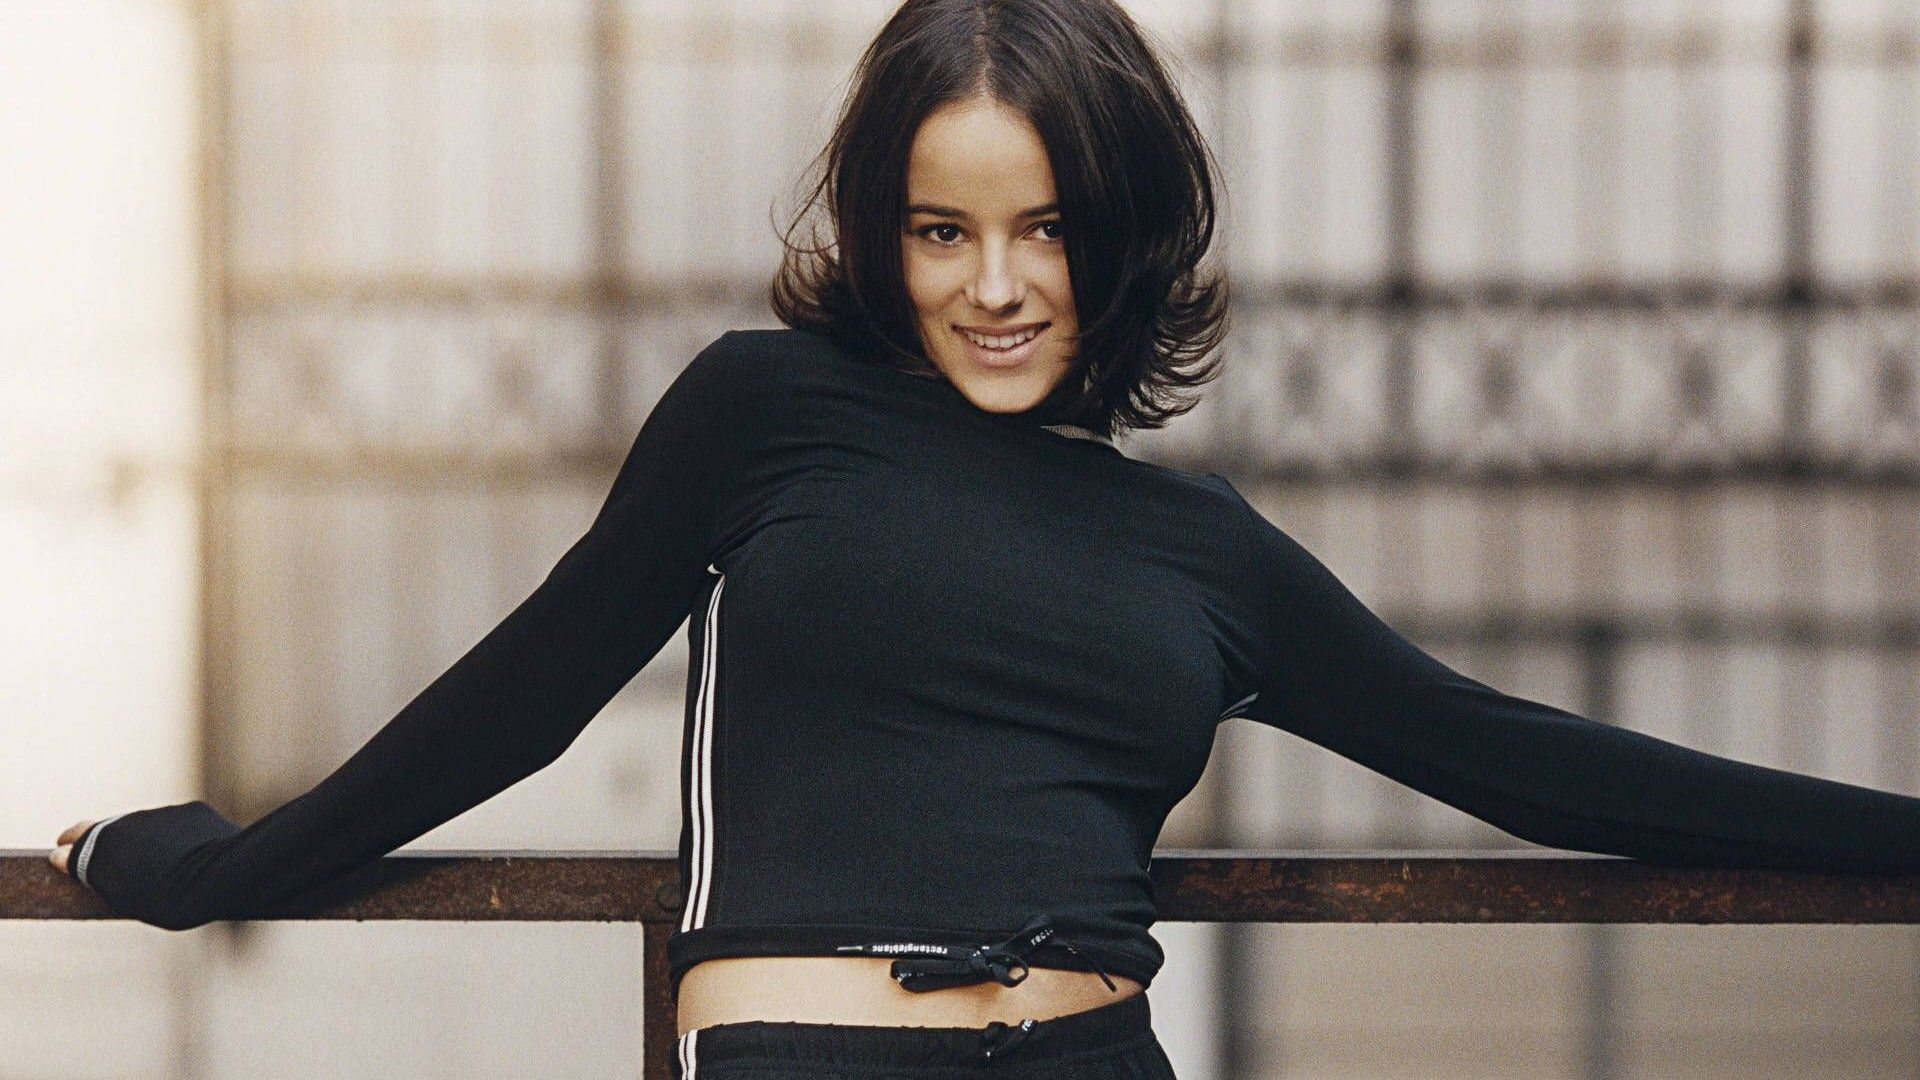 Alizee Wallpaper